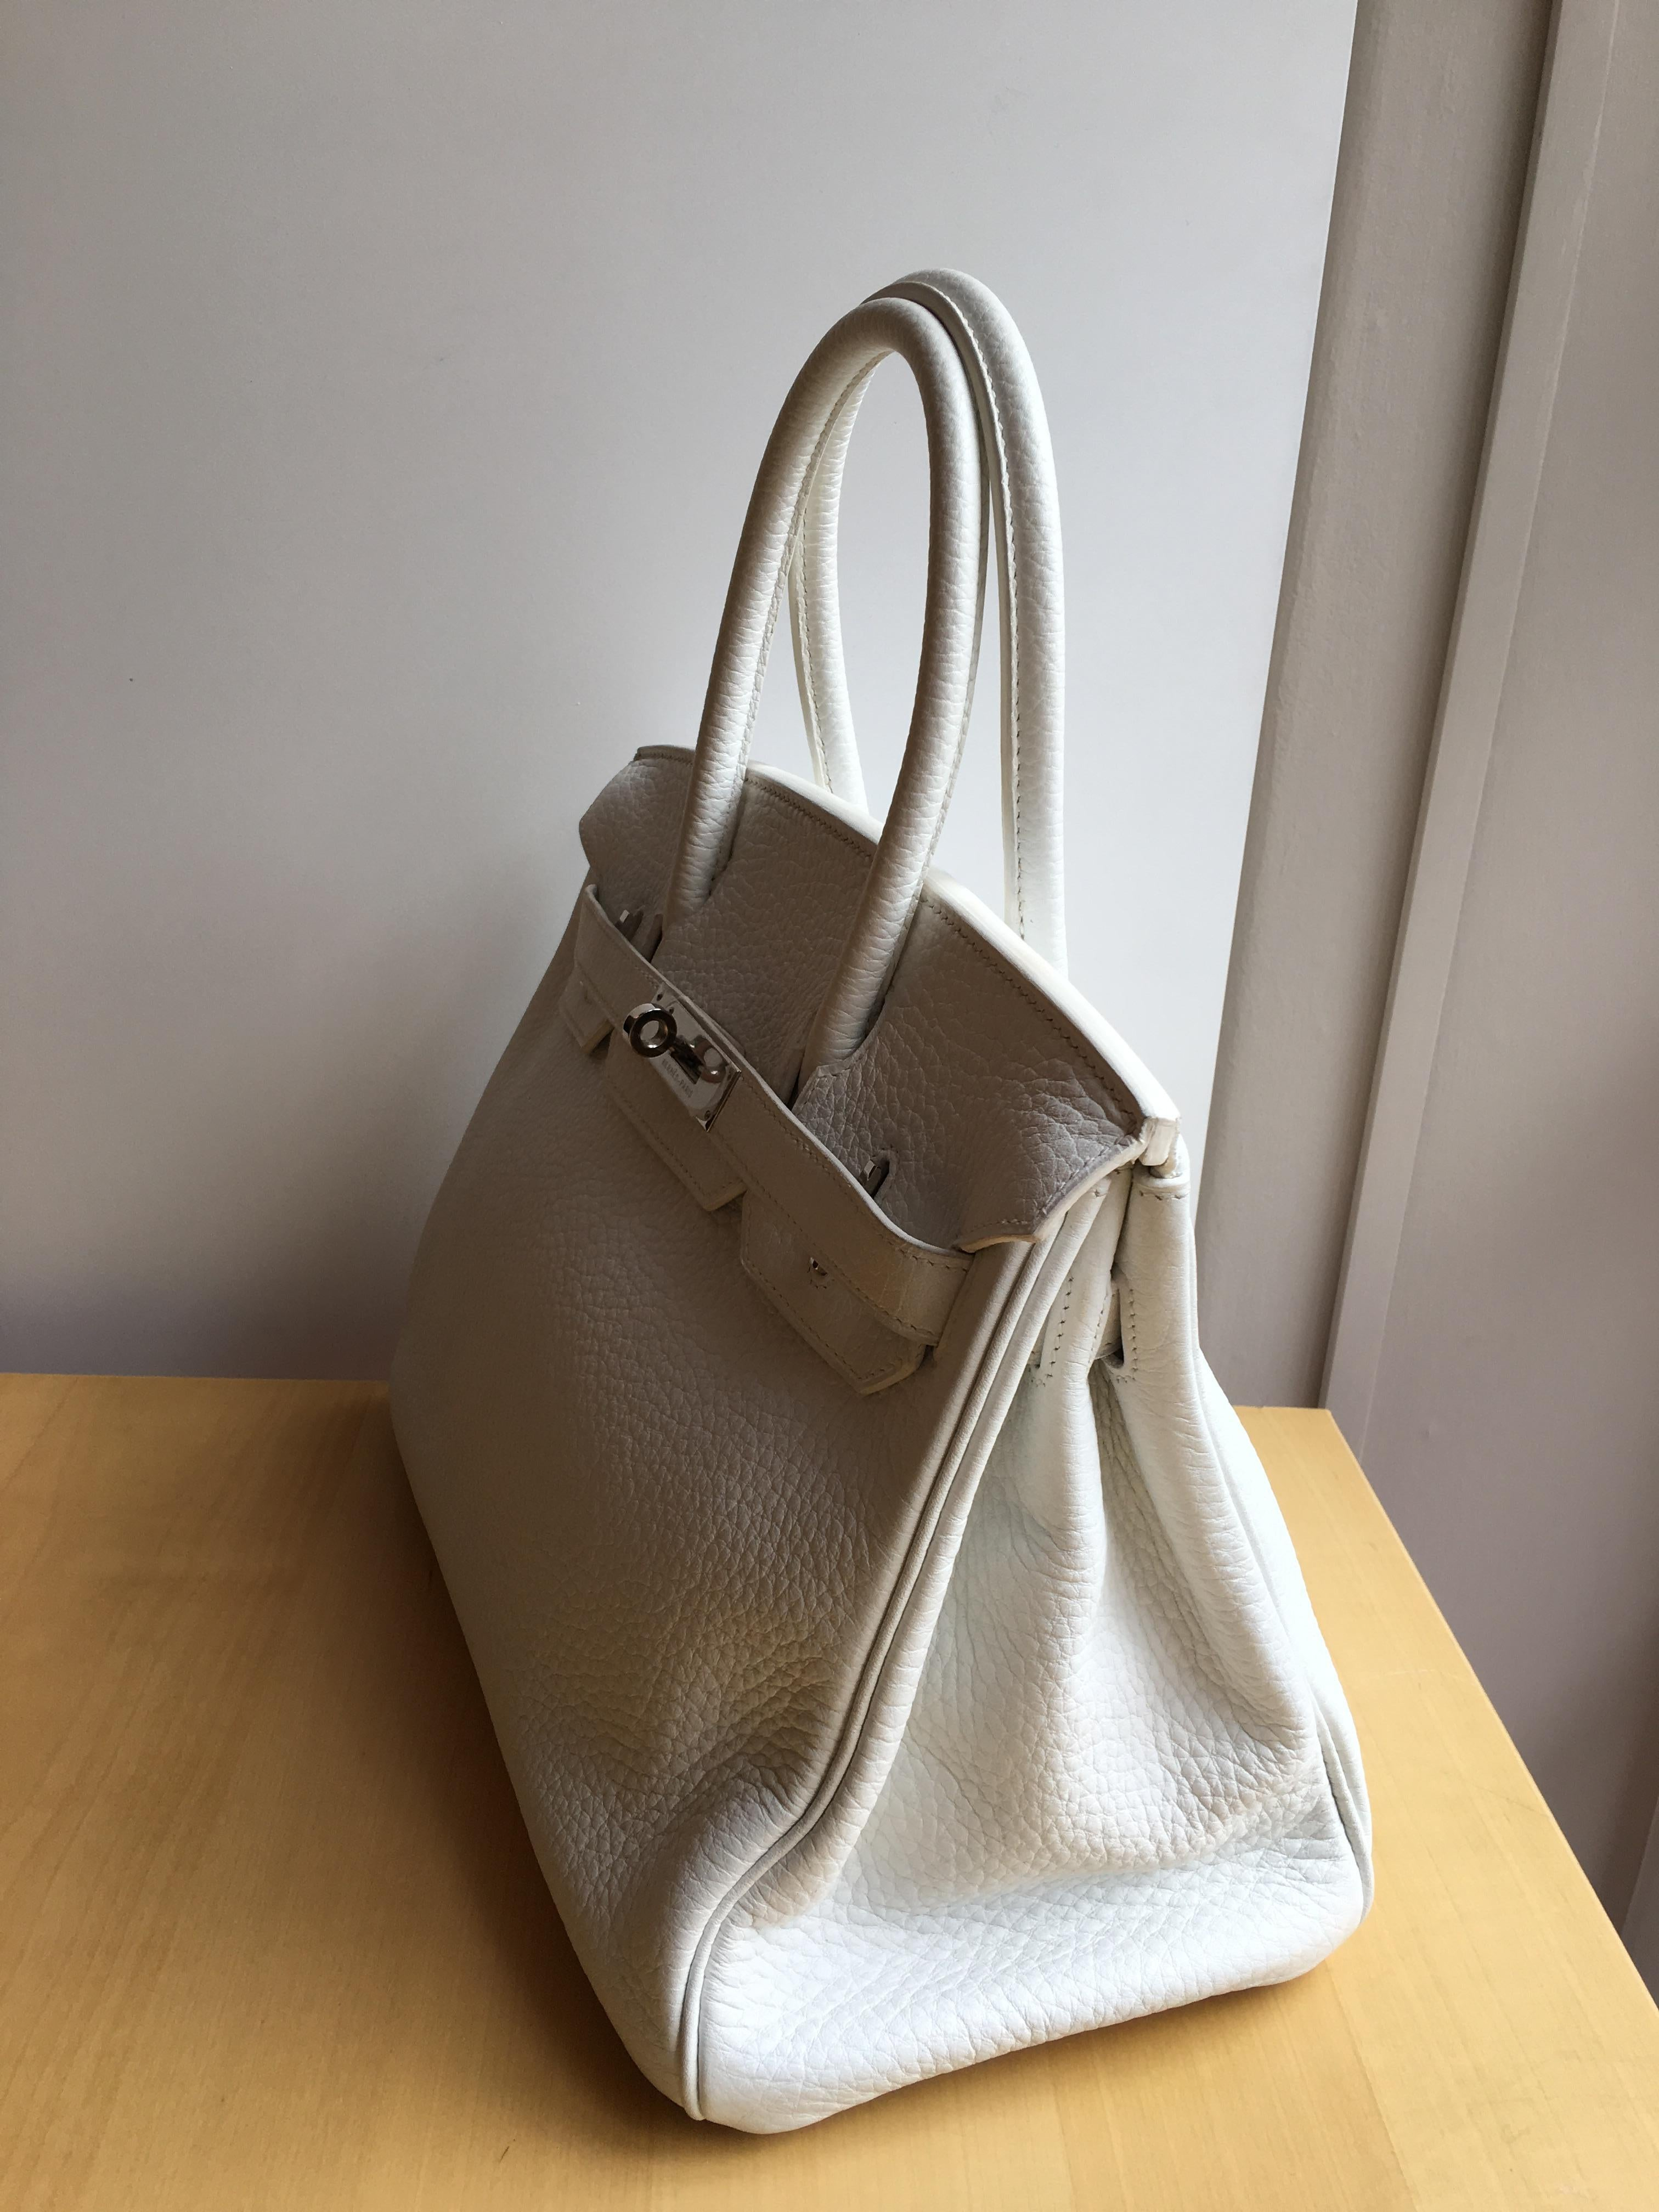 02669ec5a73d Hermes white Birkin 30cm in Clemence with palladium For Sale at 1stdibs